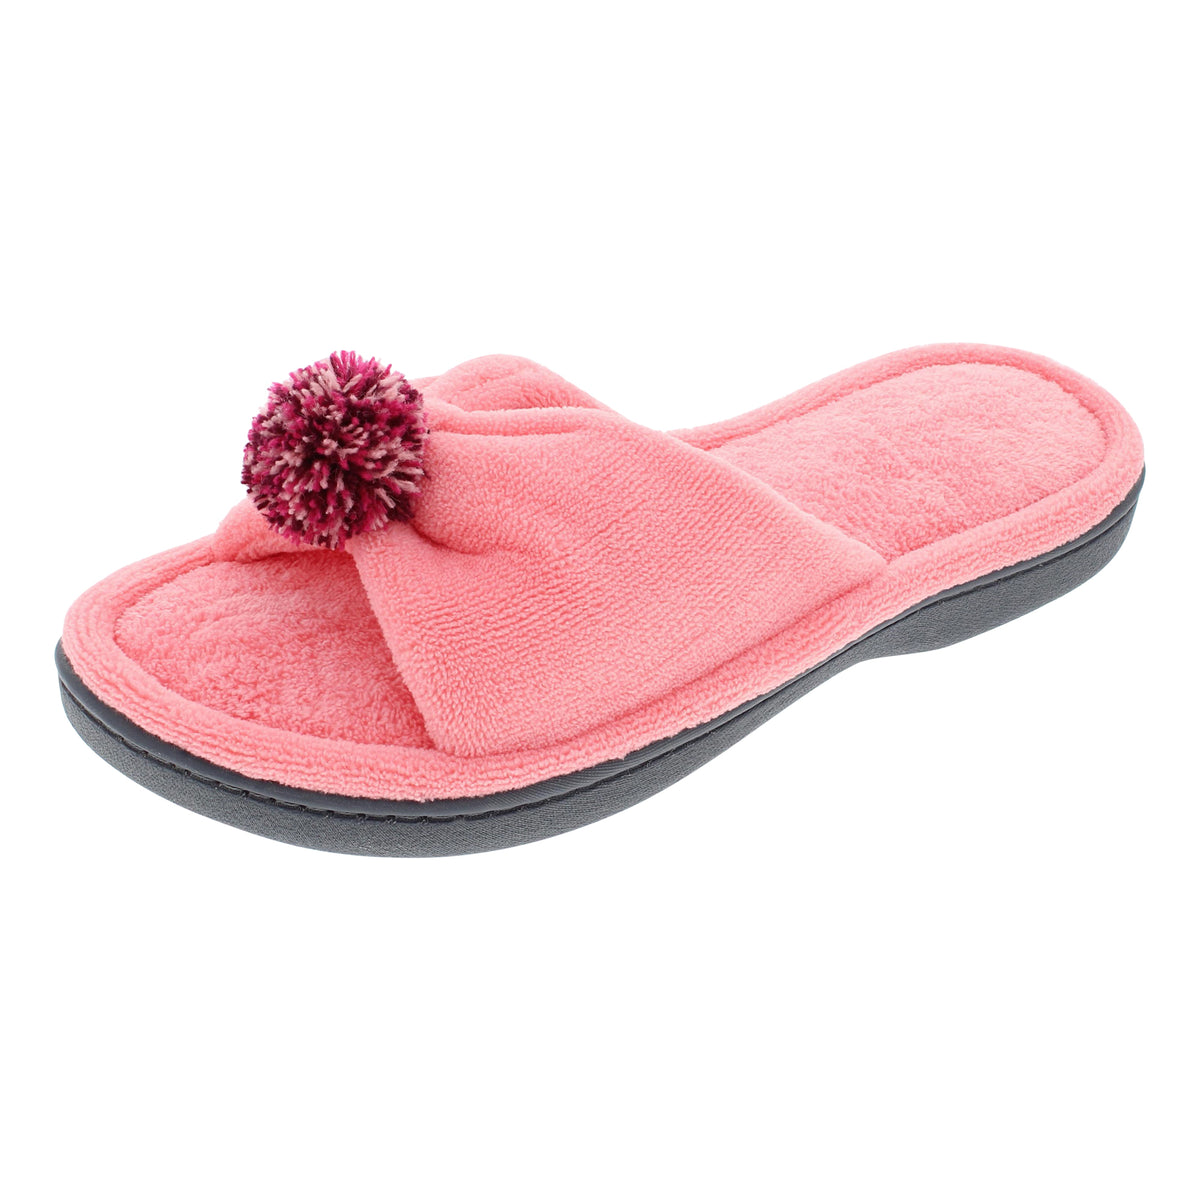 Isotoner Women's Microterry Penny Open-Toe Slide Slippers with Pom